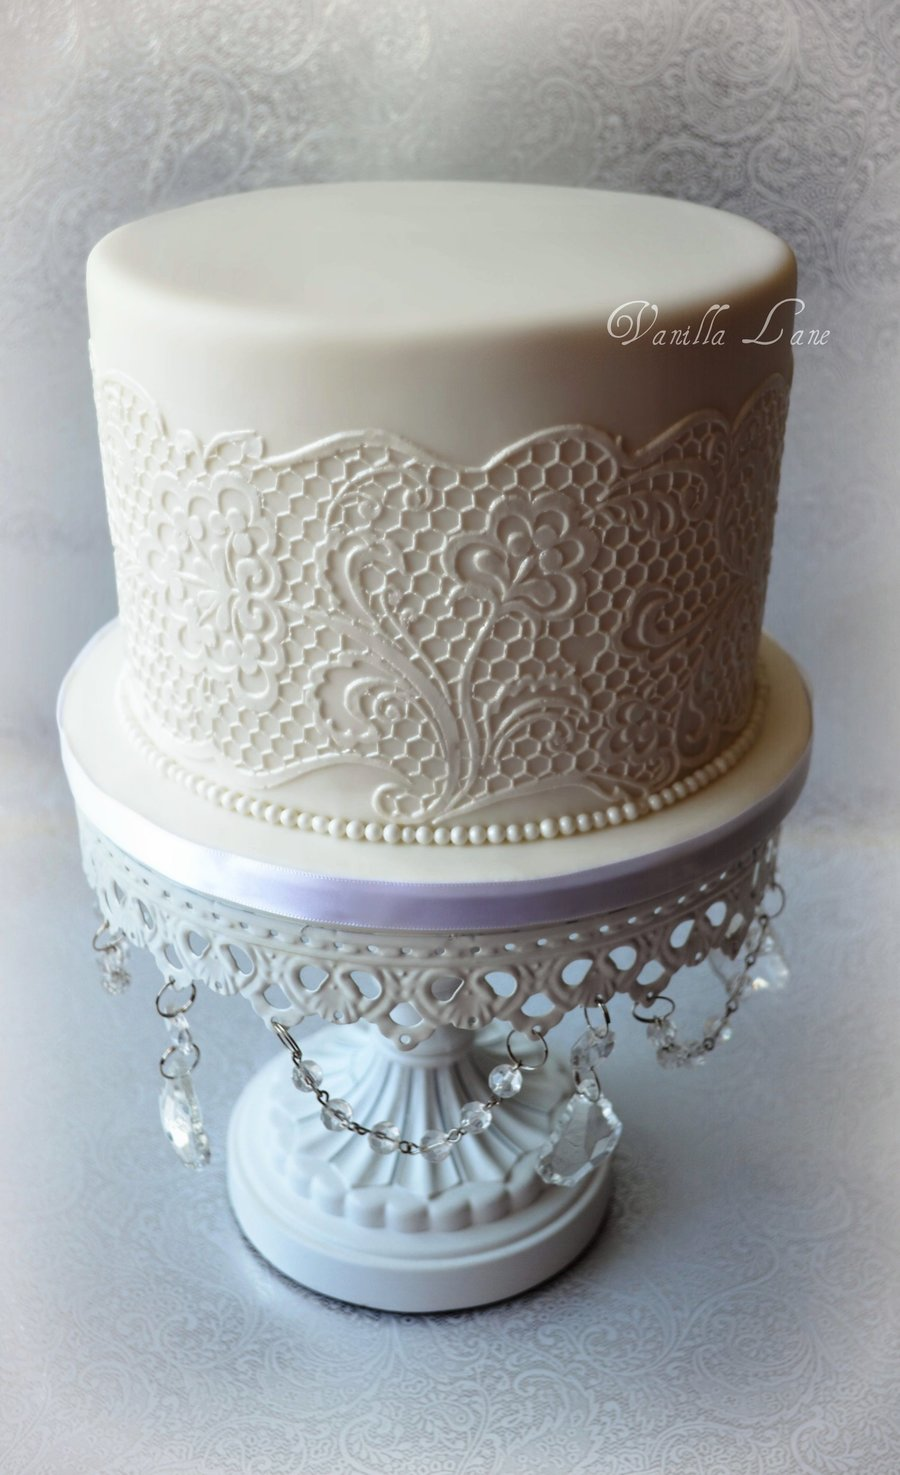 Wedding Cake For The Top Of My Cupcake Display First Time